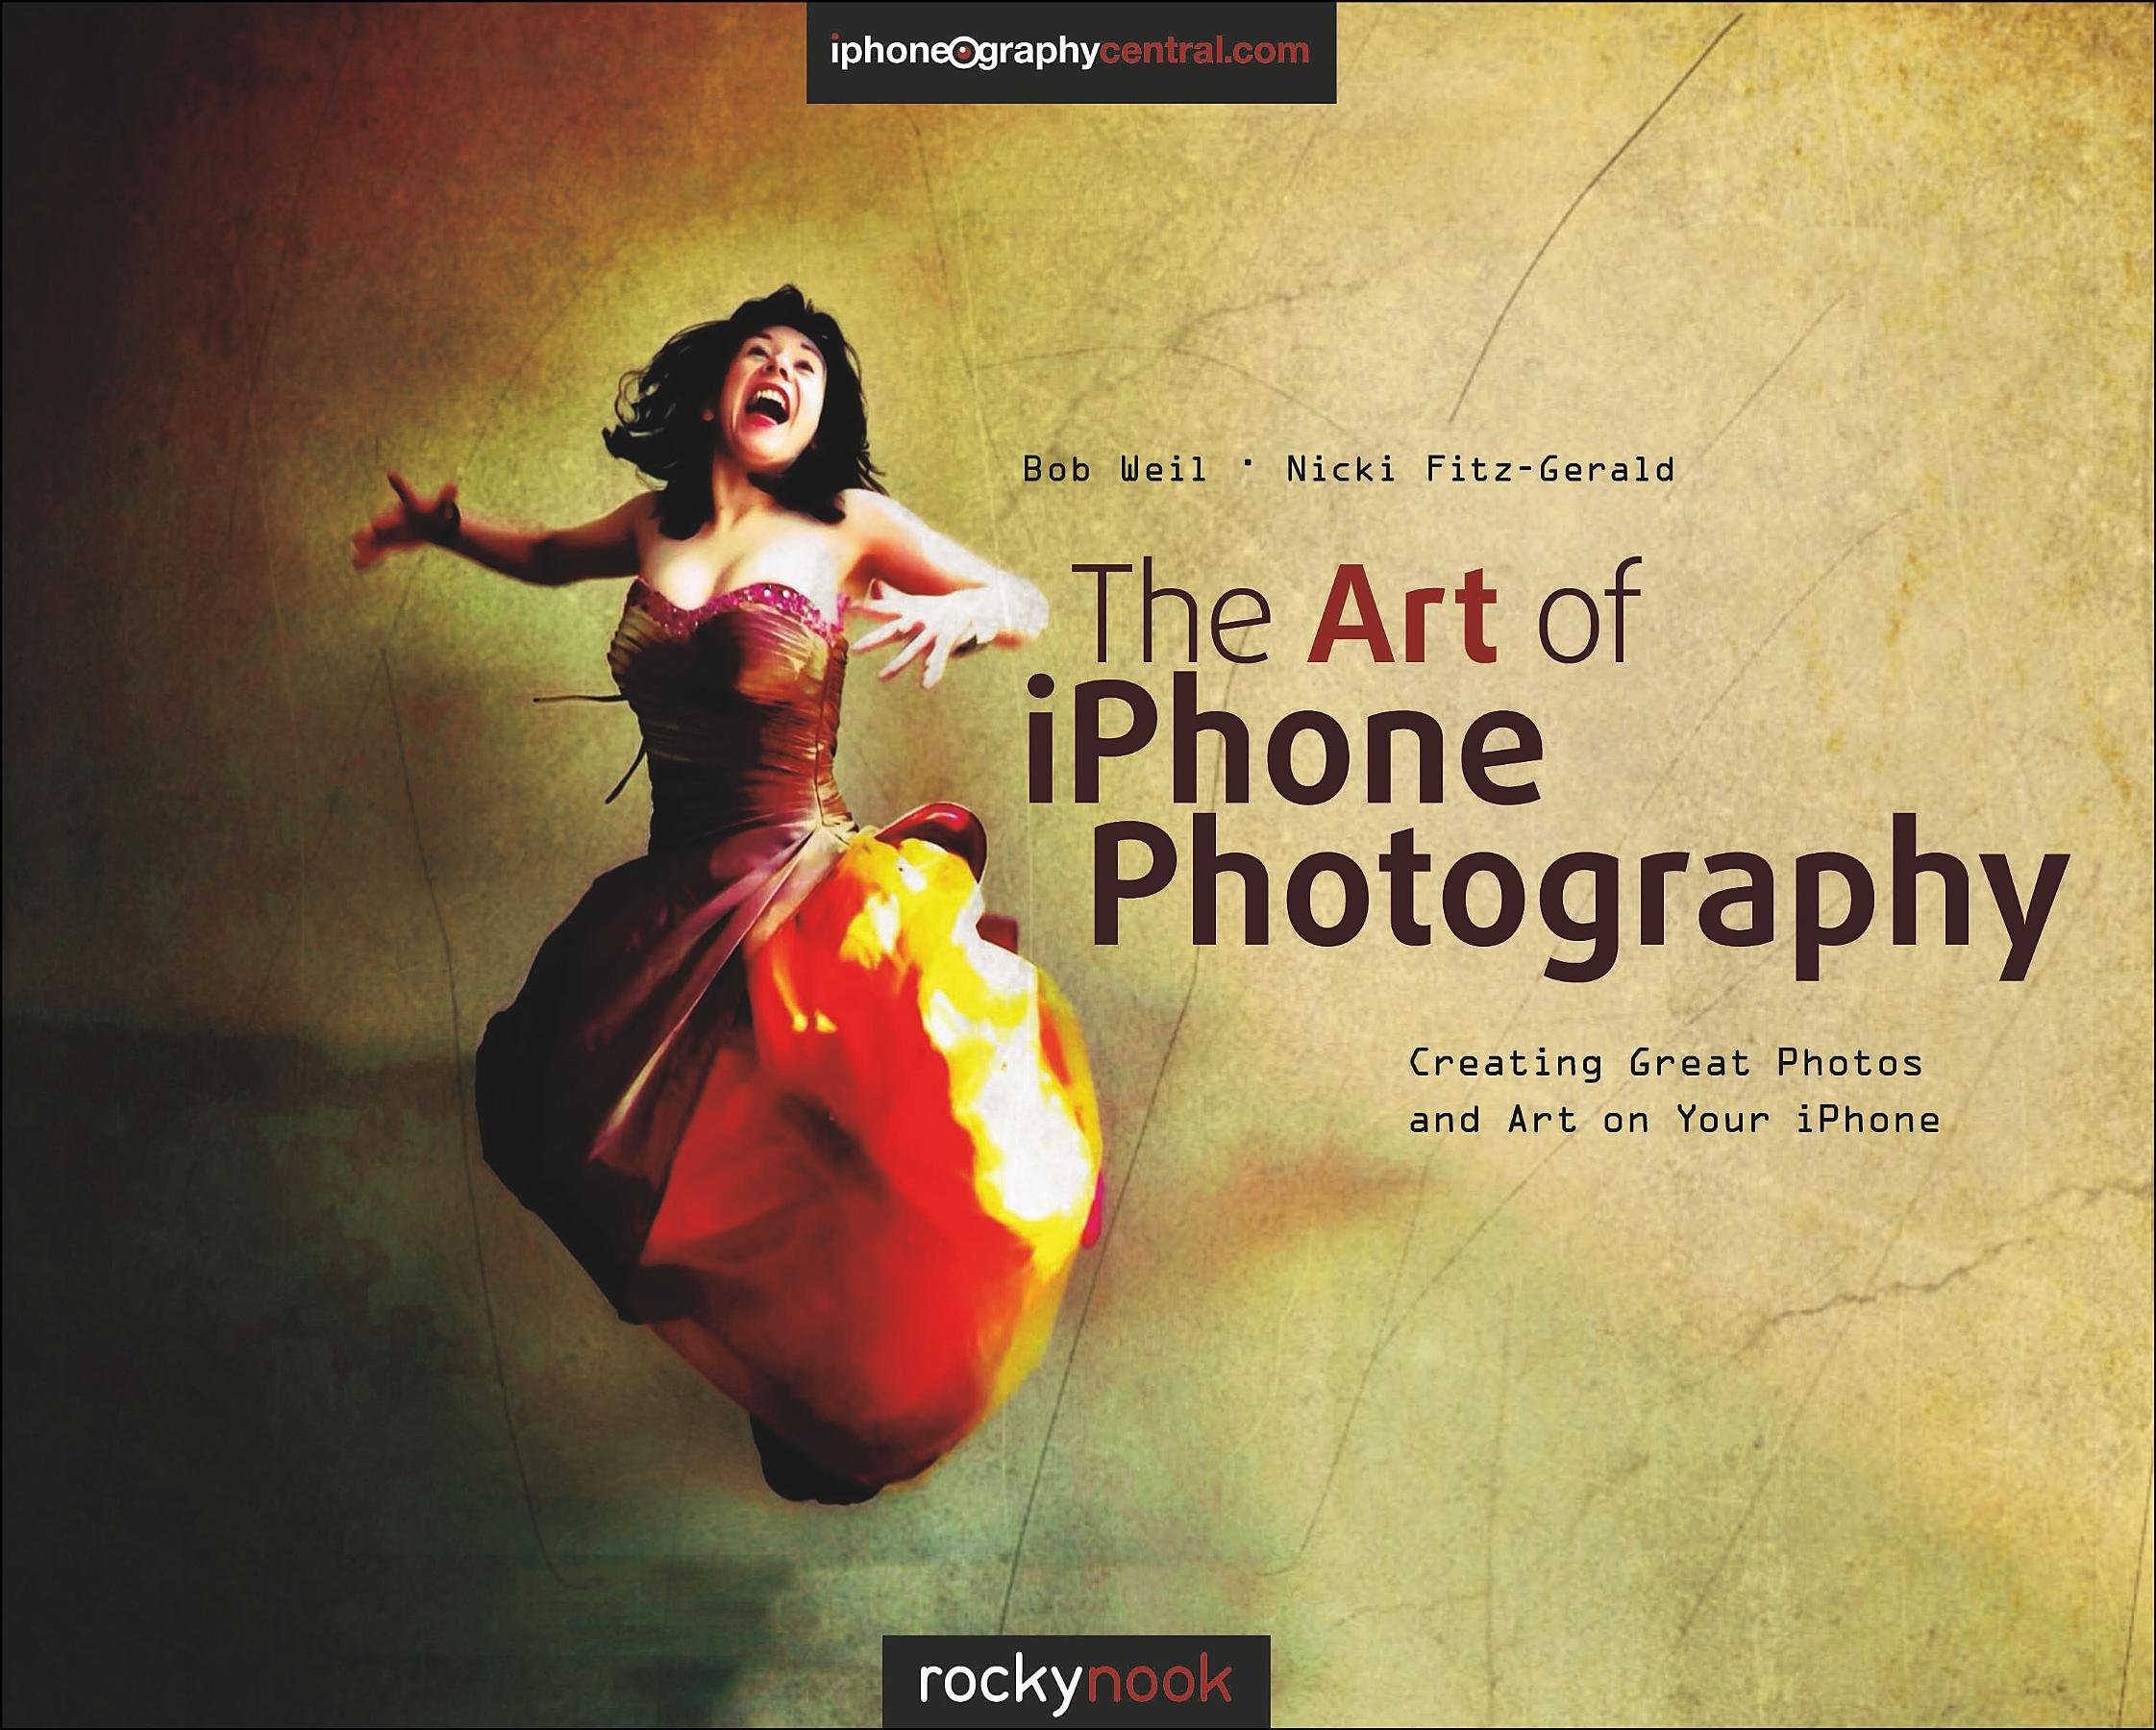 Amazon Com The Art Of Iphone Photography Creating Great Photos And Art On Your Iphone Ebook Weil Bob Fitz Gerald Nicki Kindle Store